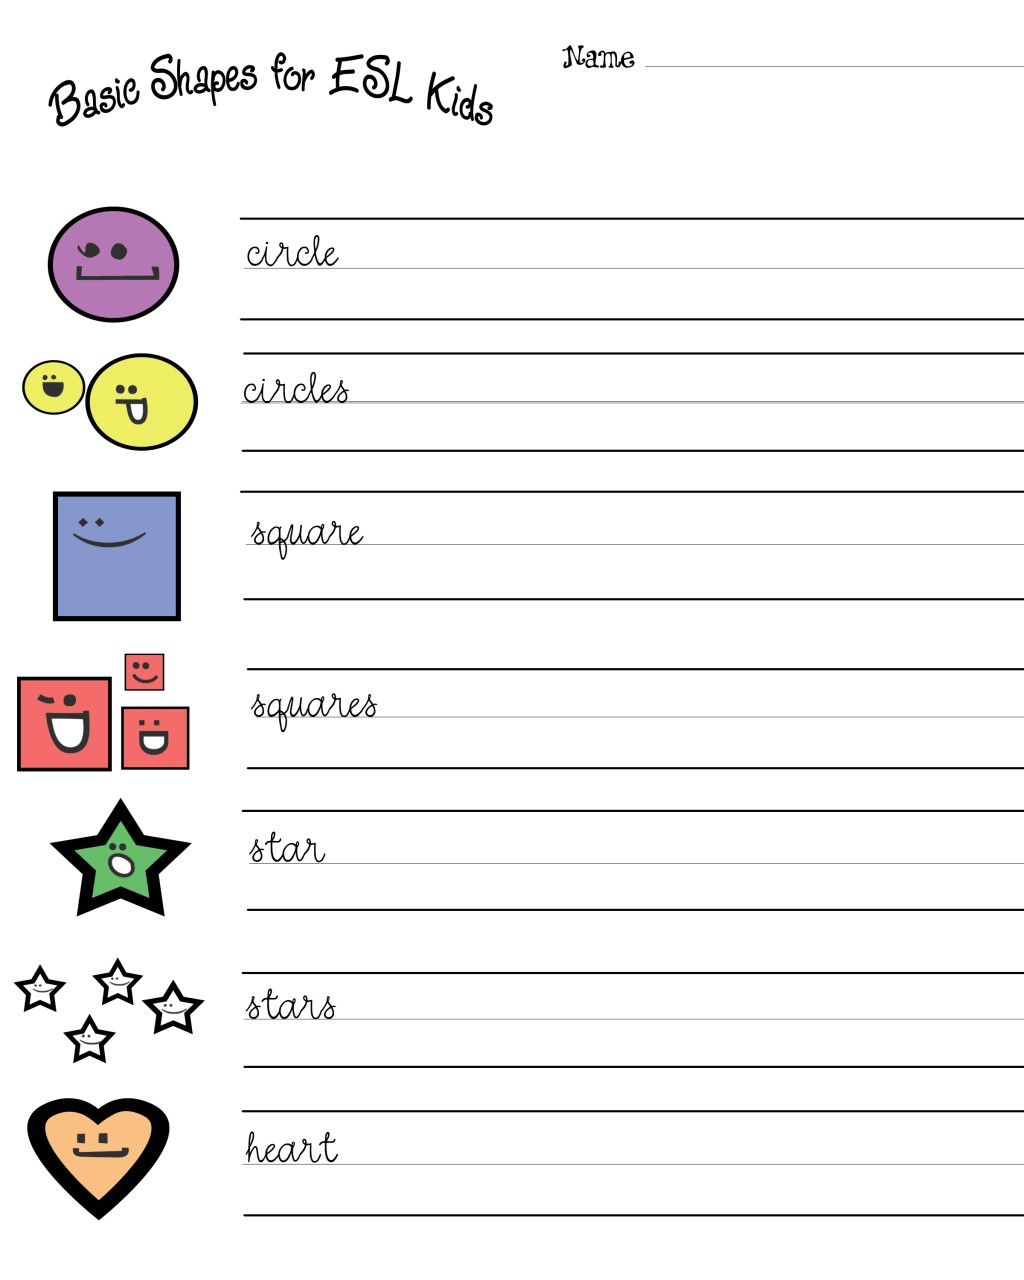 English Bud S Esl Worksheet Shapes